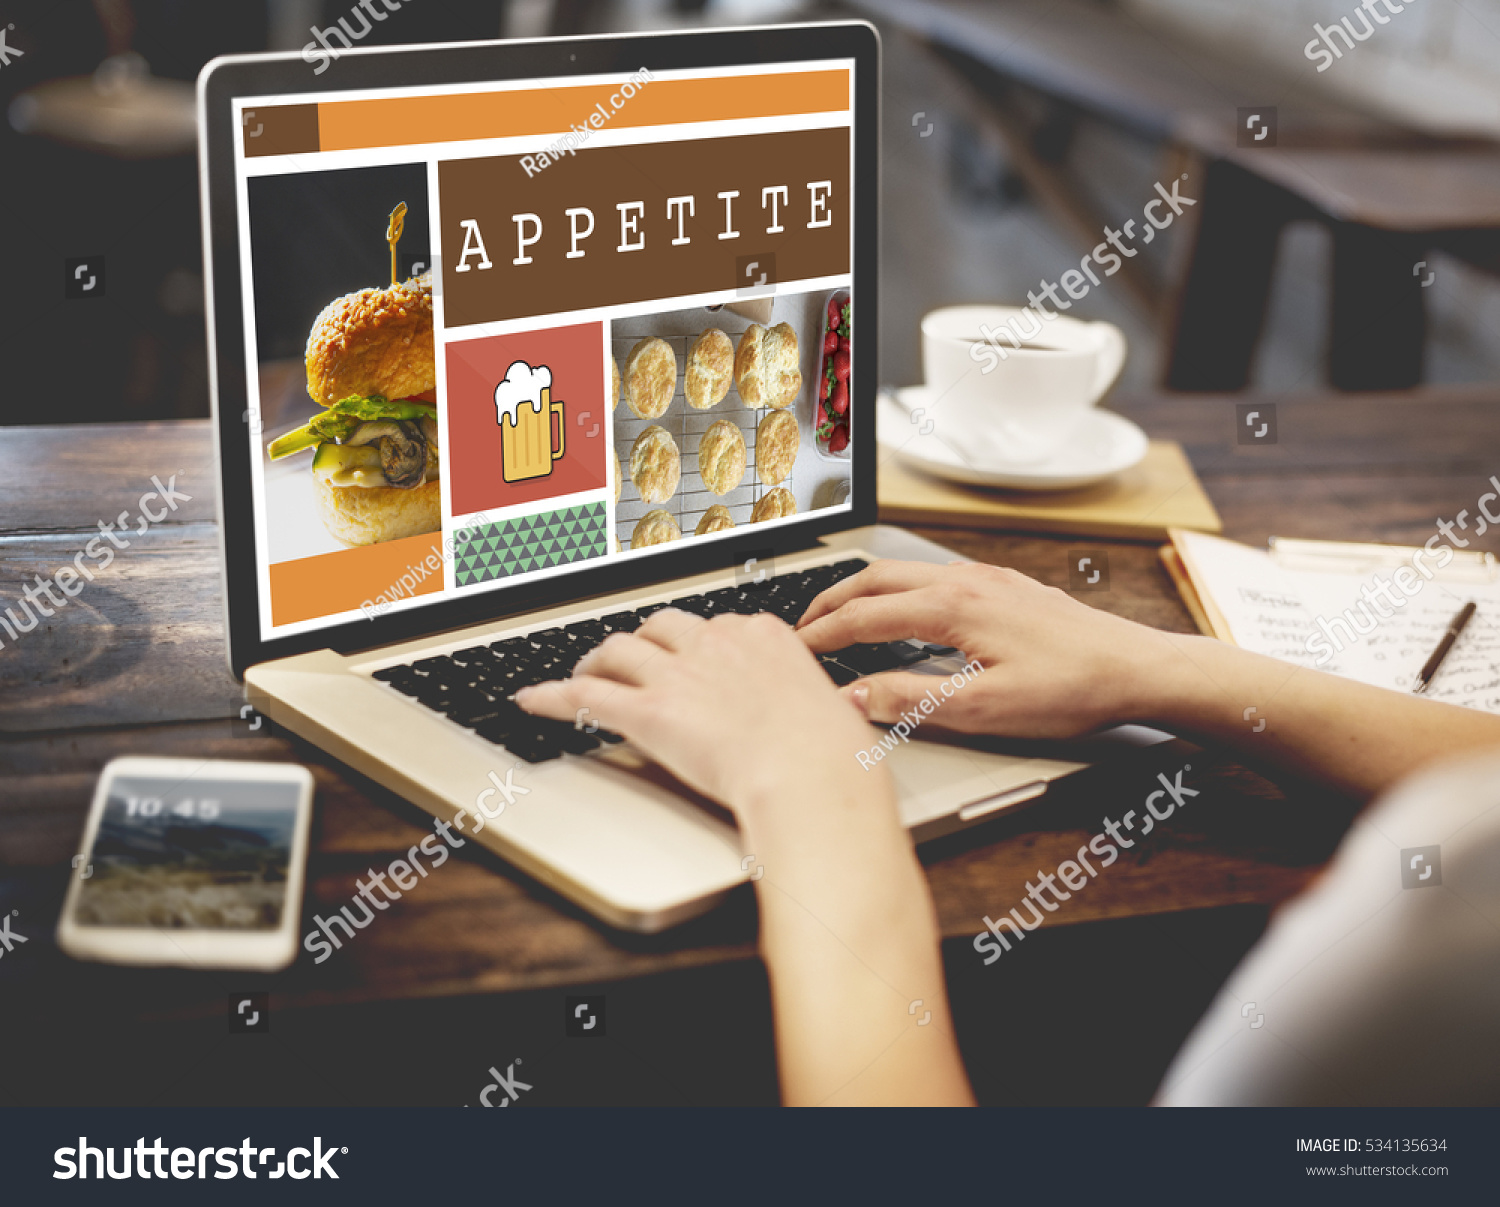 food menu appetite cuisine concept stock photo 534135634 shutterstock. Black Bedroom Furniture Sets. Home Design Ideas